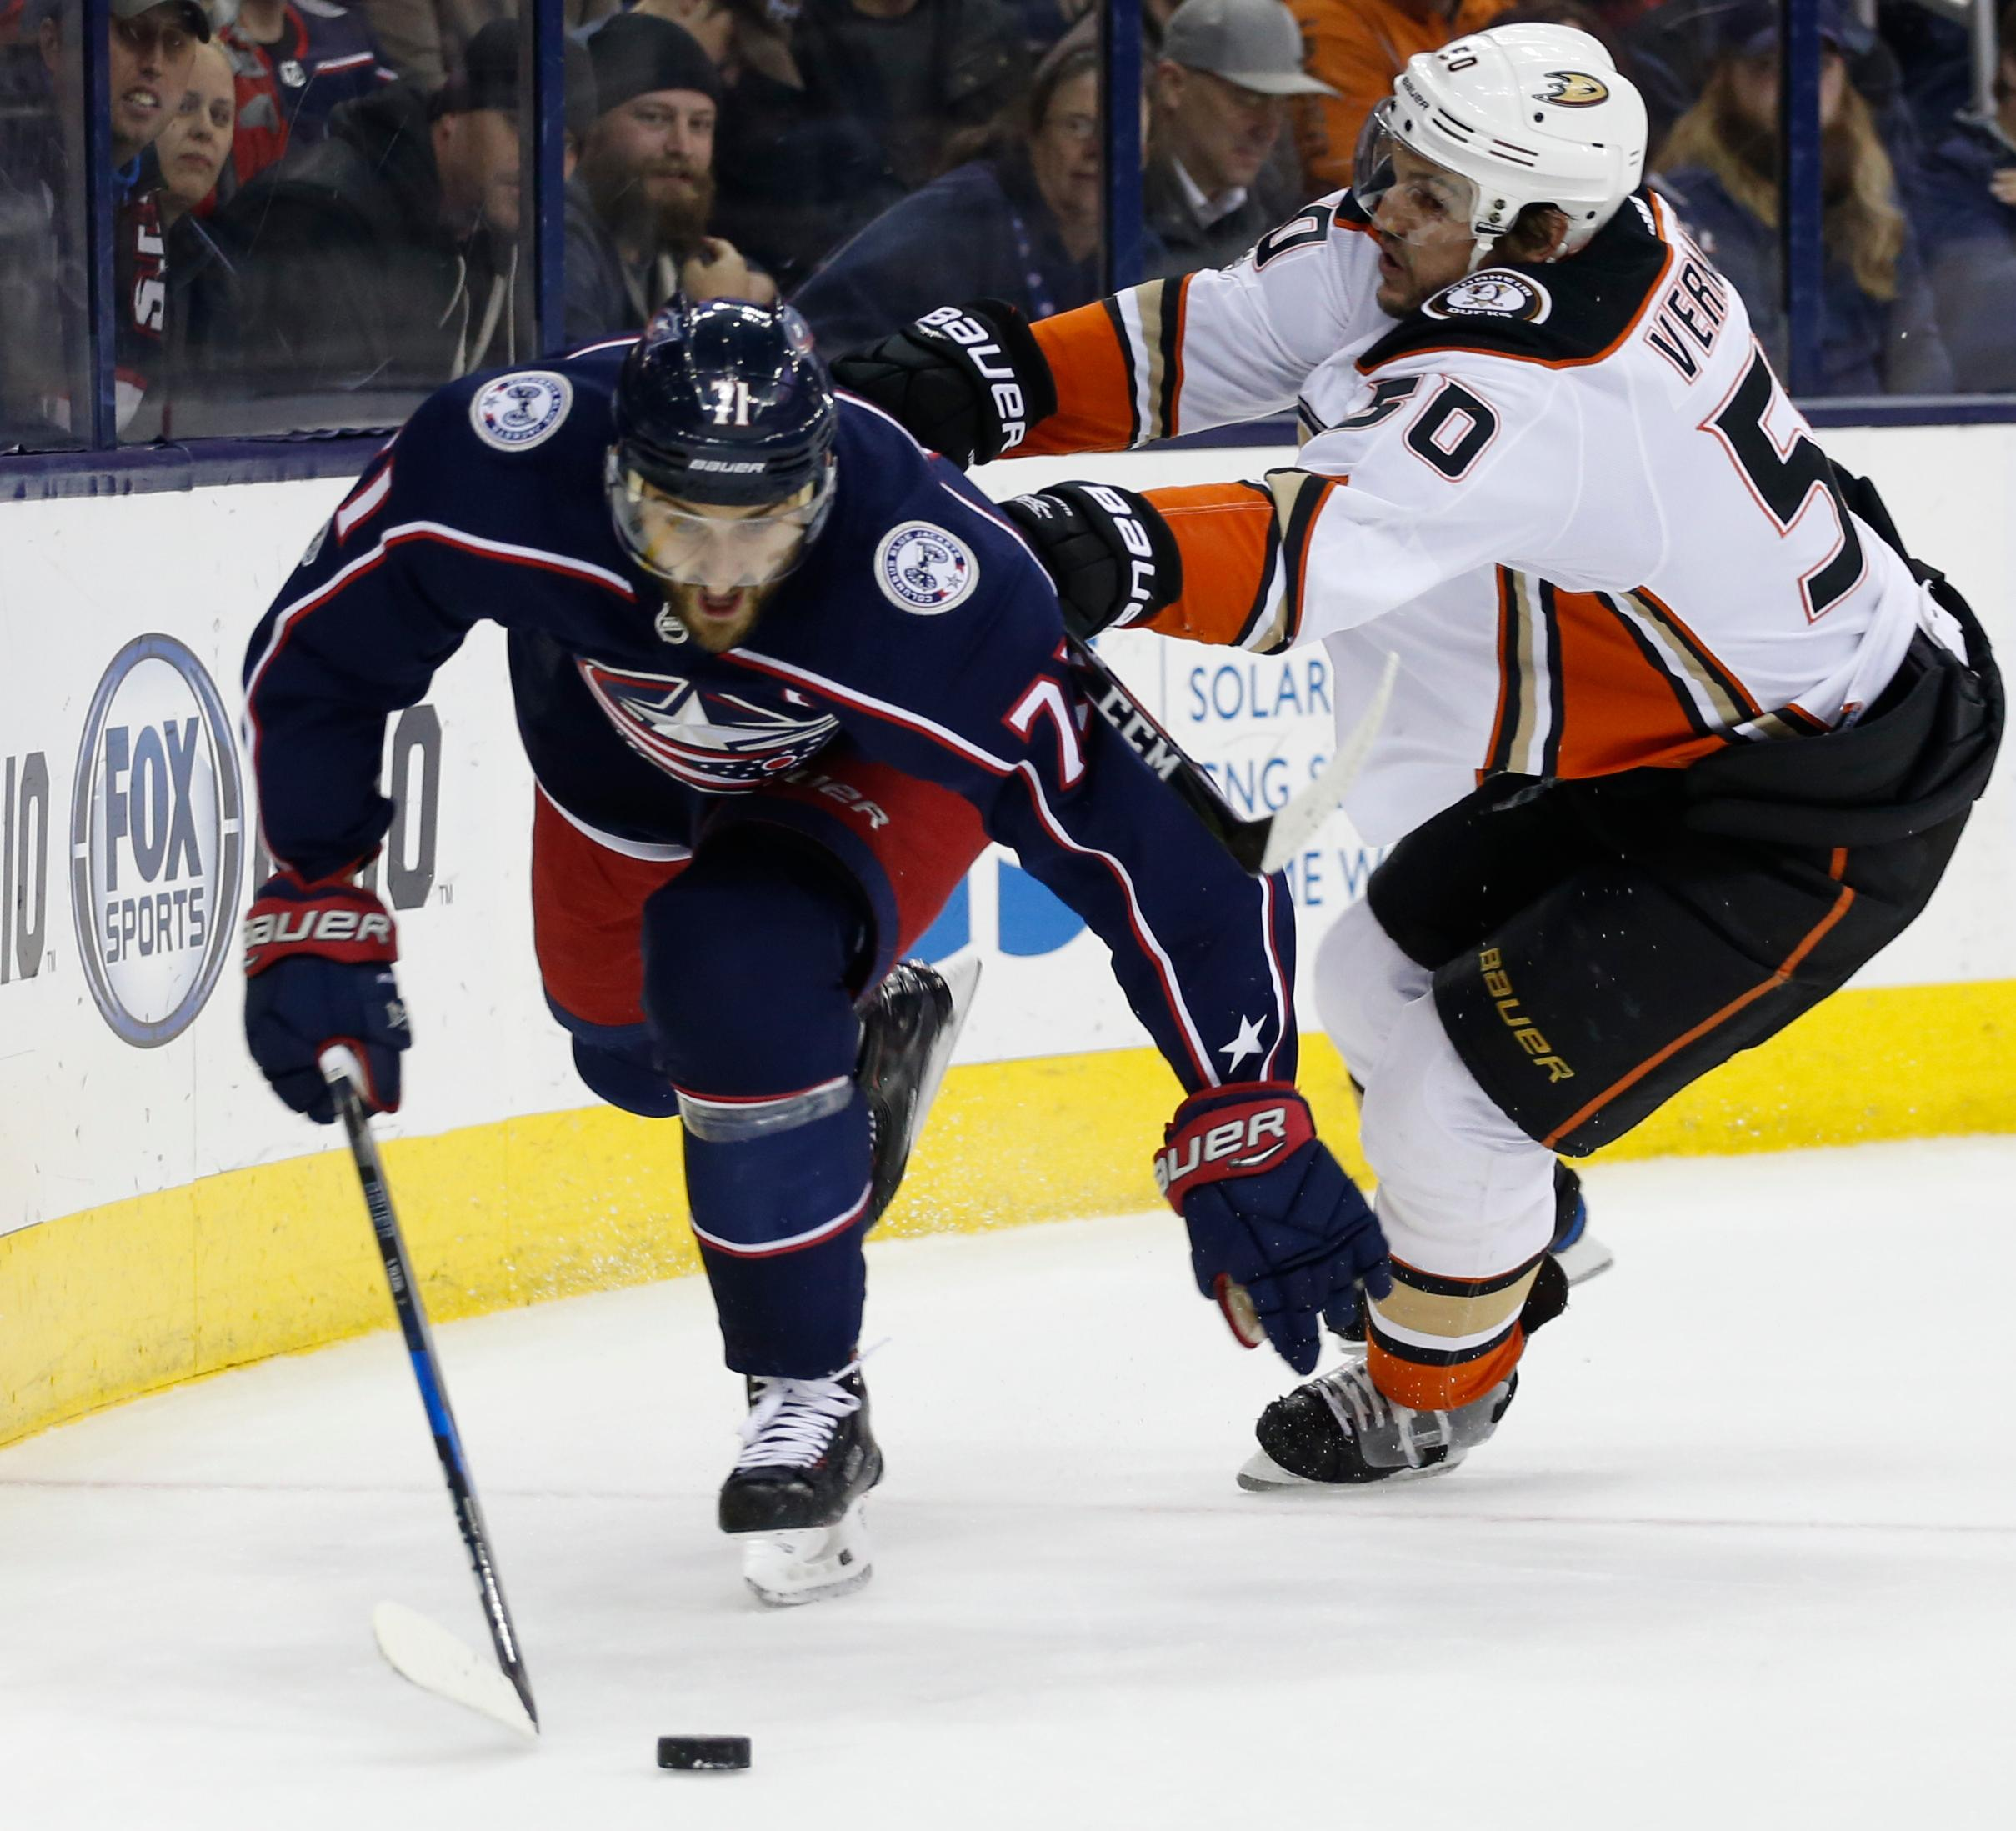 Anaheim Ducks' Antoine Vermette, right, checks Columbus Blue Jackets' Nick Foligno during the second period of an NHL hockey game Friday, Dec. 1, 2017, in Columbus, Ohio. (AP Photo/Jay LaPrete)